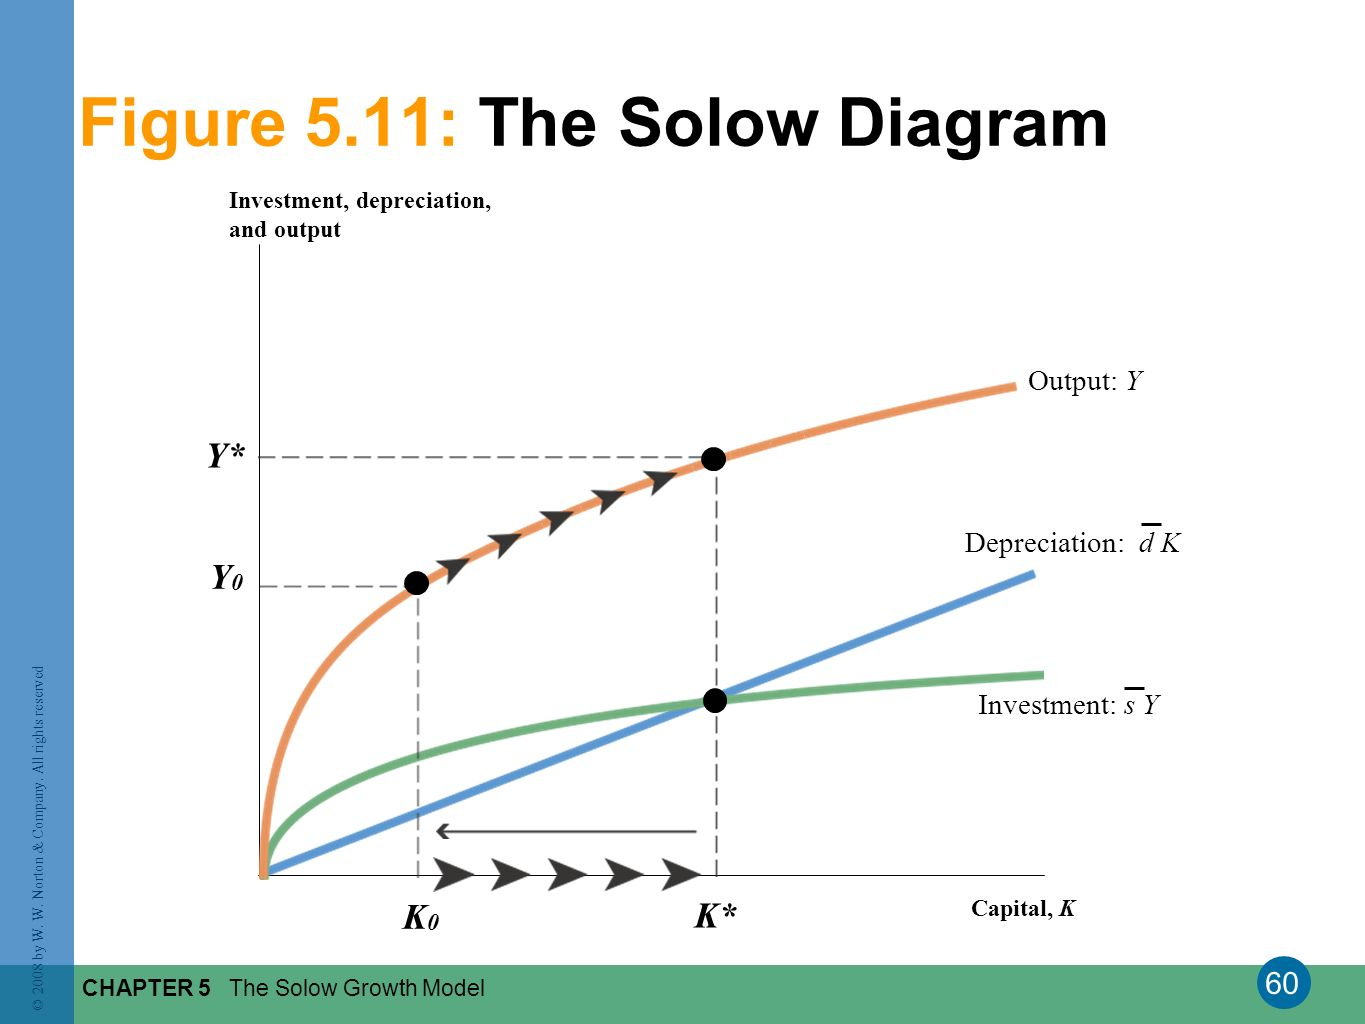 60 © 2008 by W. W. Norton & Company. All rights reserved CHAPTER 5 The Solow Growth Model Figure 5.11: The Solow Diagram Investment, depreciation, and